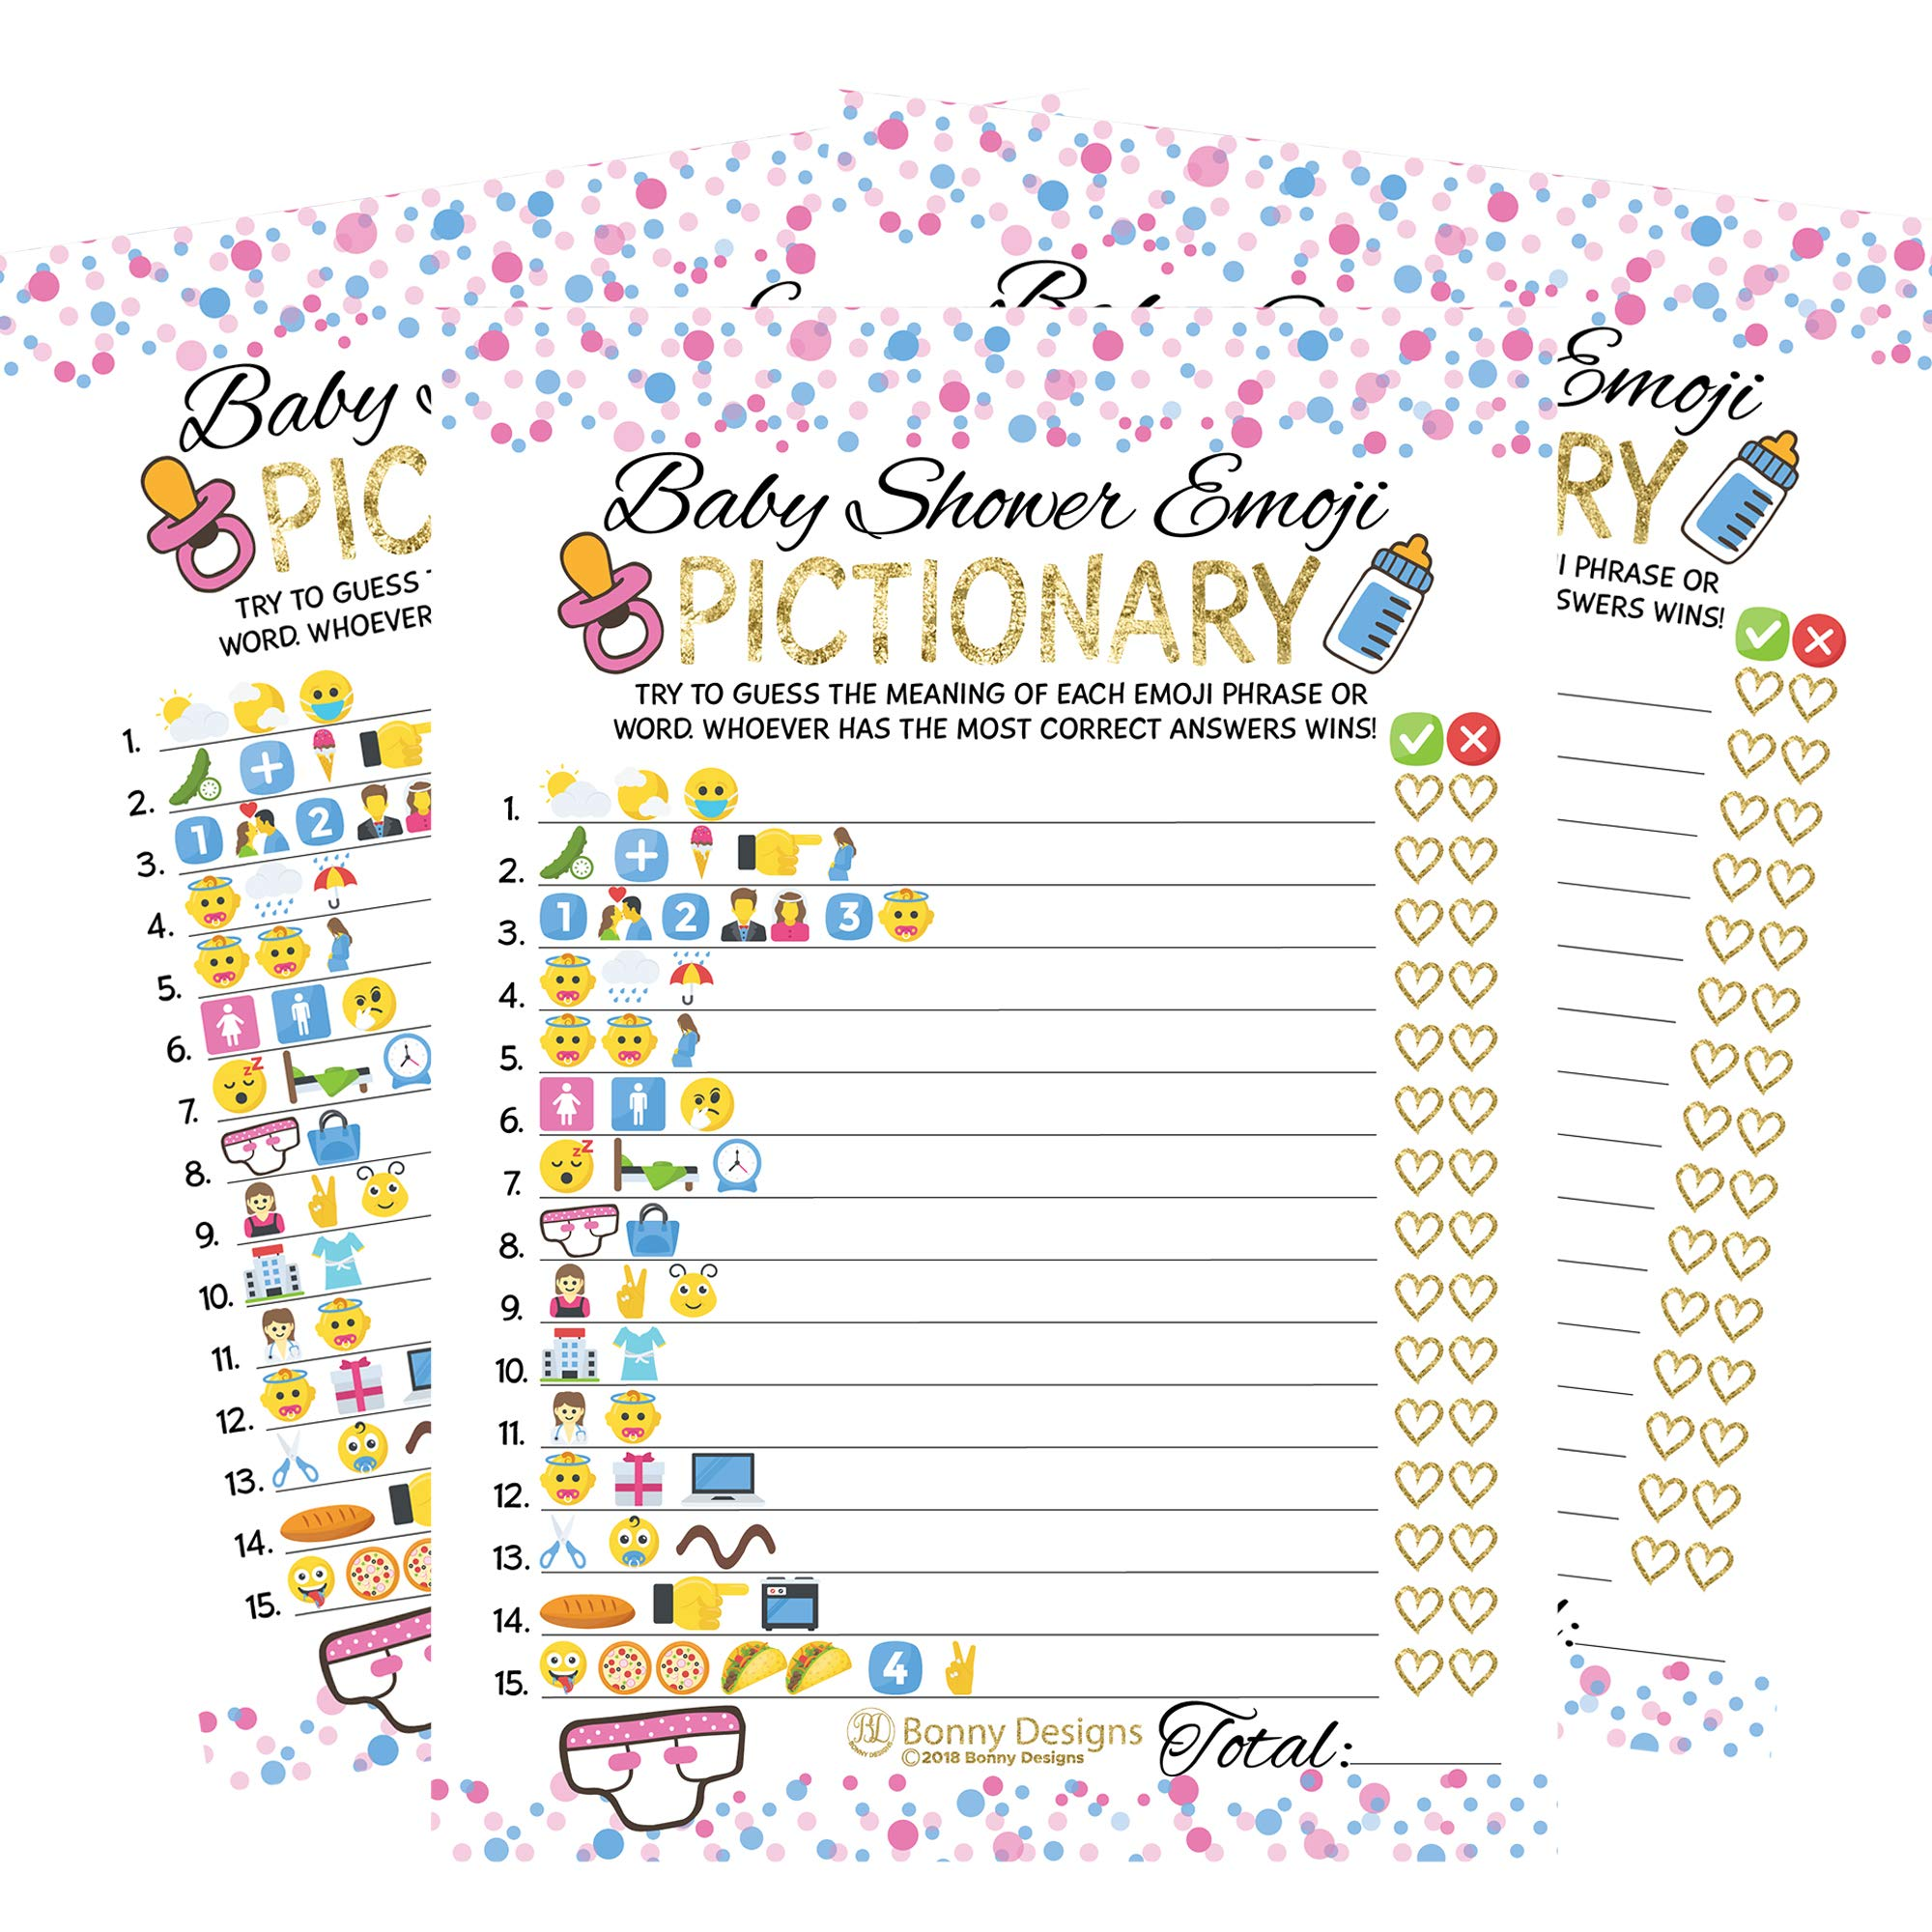 50 Sheets Emoji Pictionary Baby Shower Games for Men, Women - Kids, Girls, Boys, and Couples | Party Bundle Set, Favors | Pink, Gold and Blue | Neutral, Unisex Adult Guessing Cards by Bonny Designs